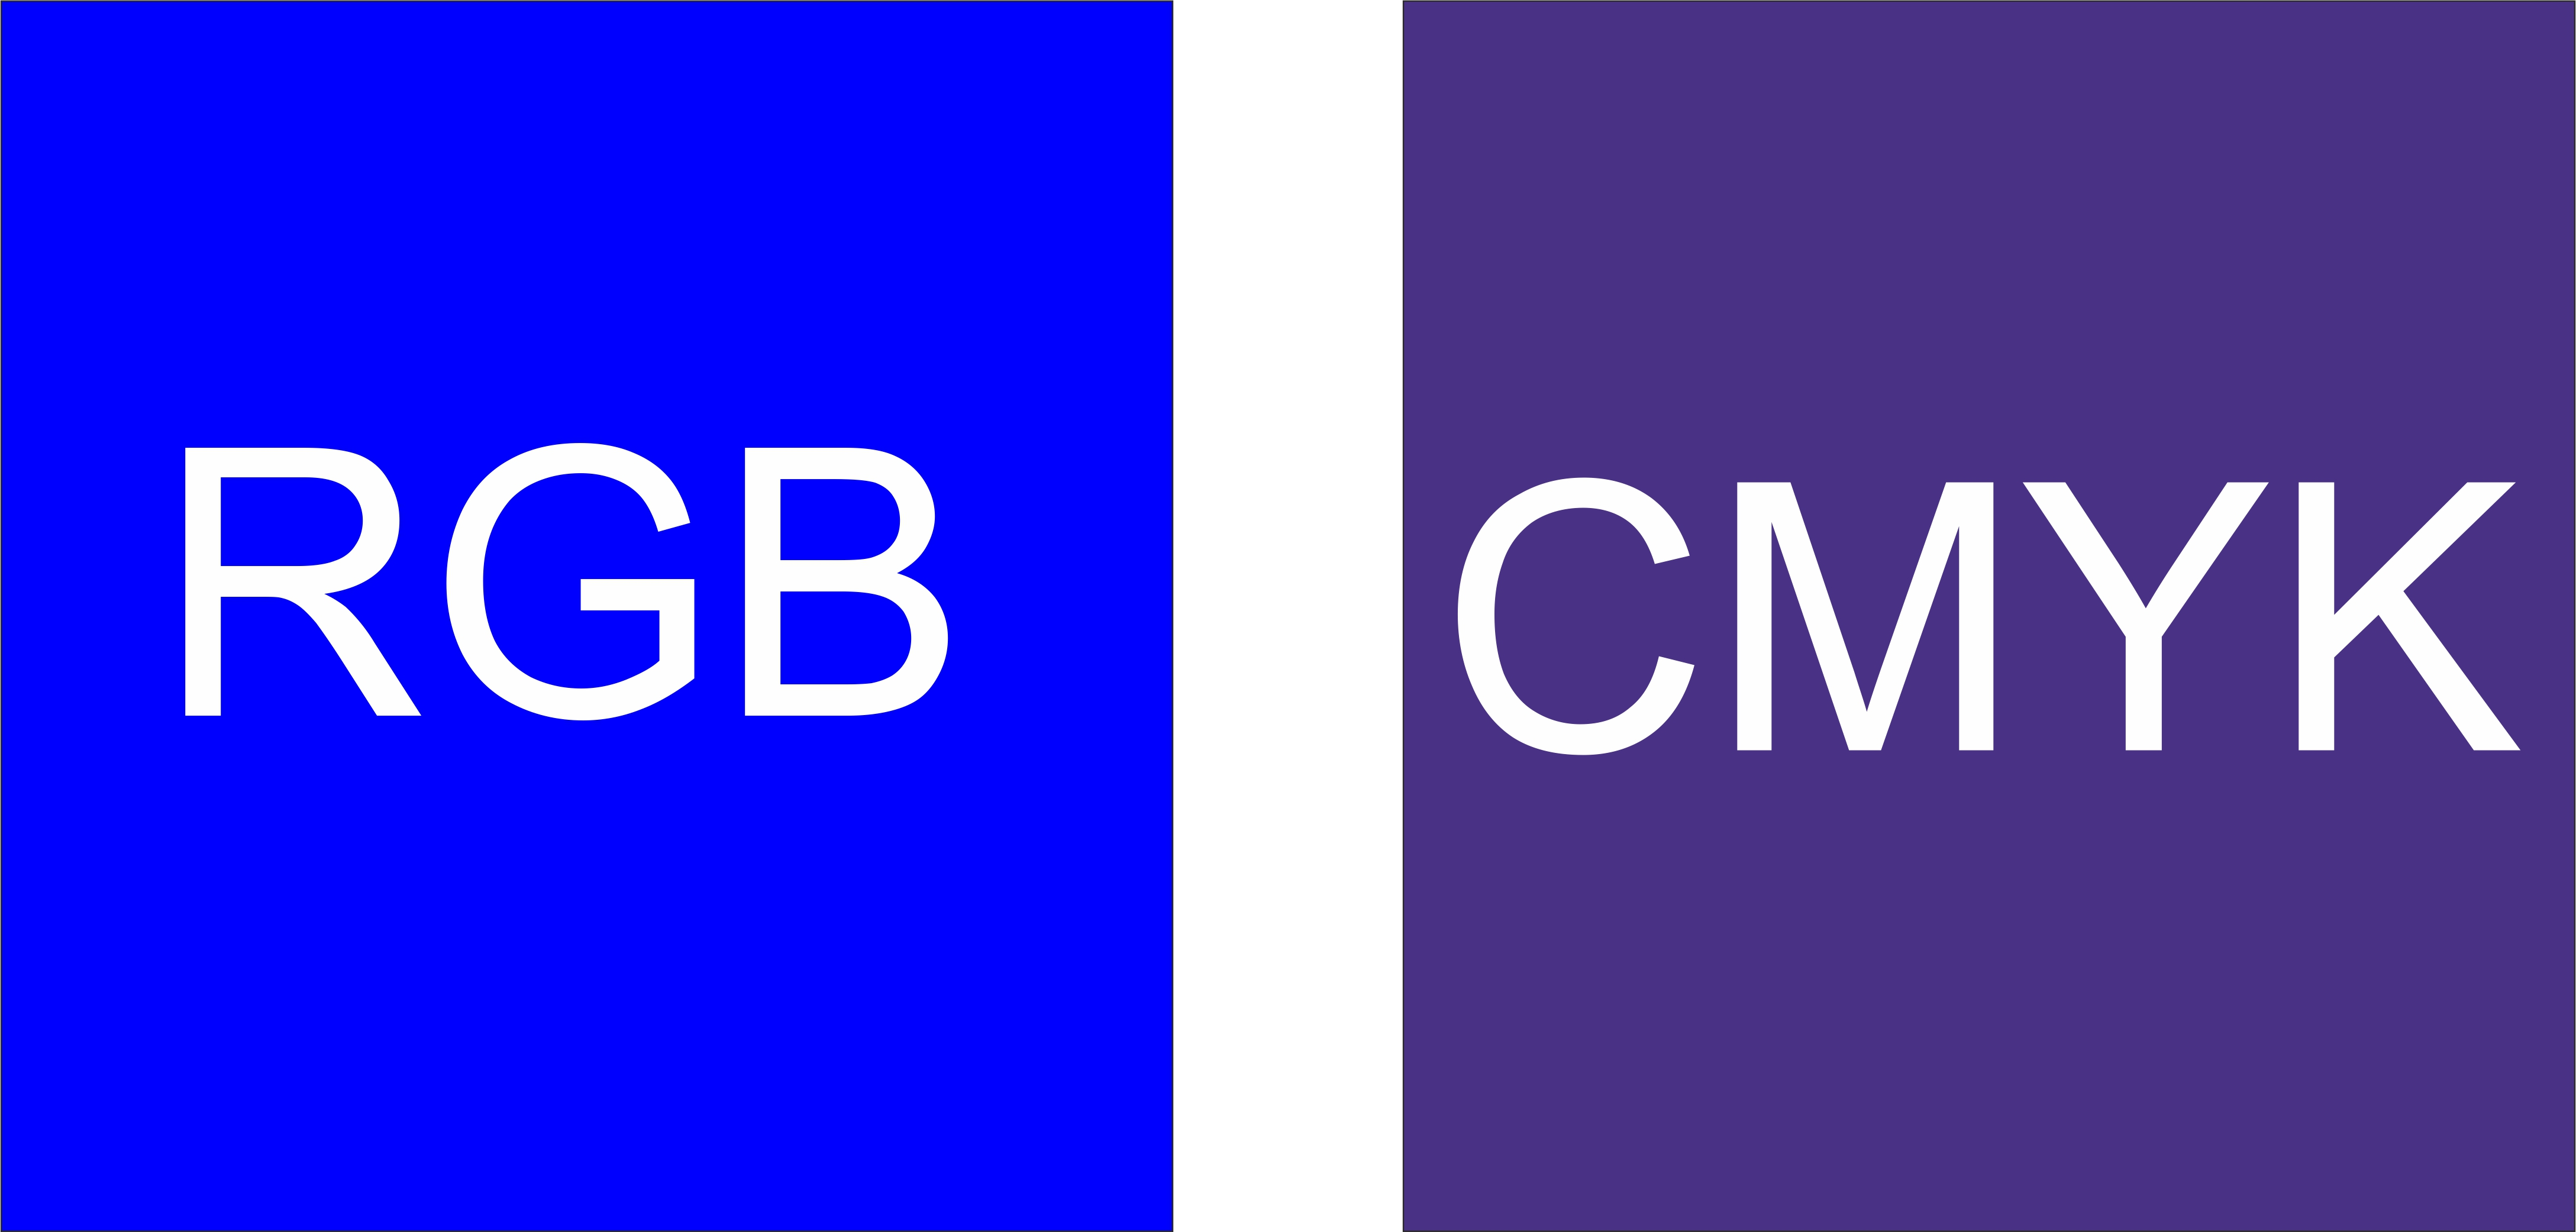 get cmyk color code from image